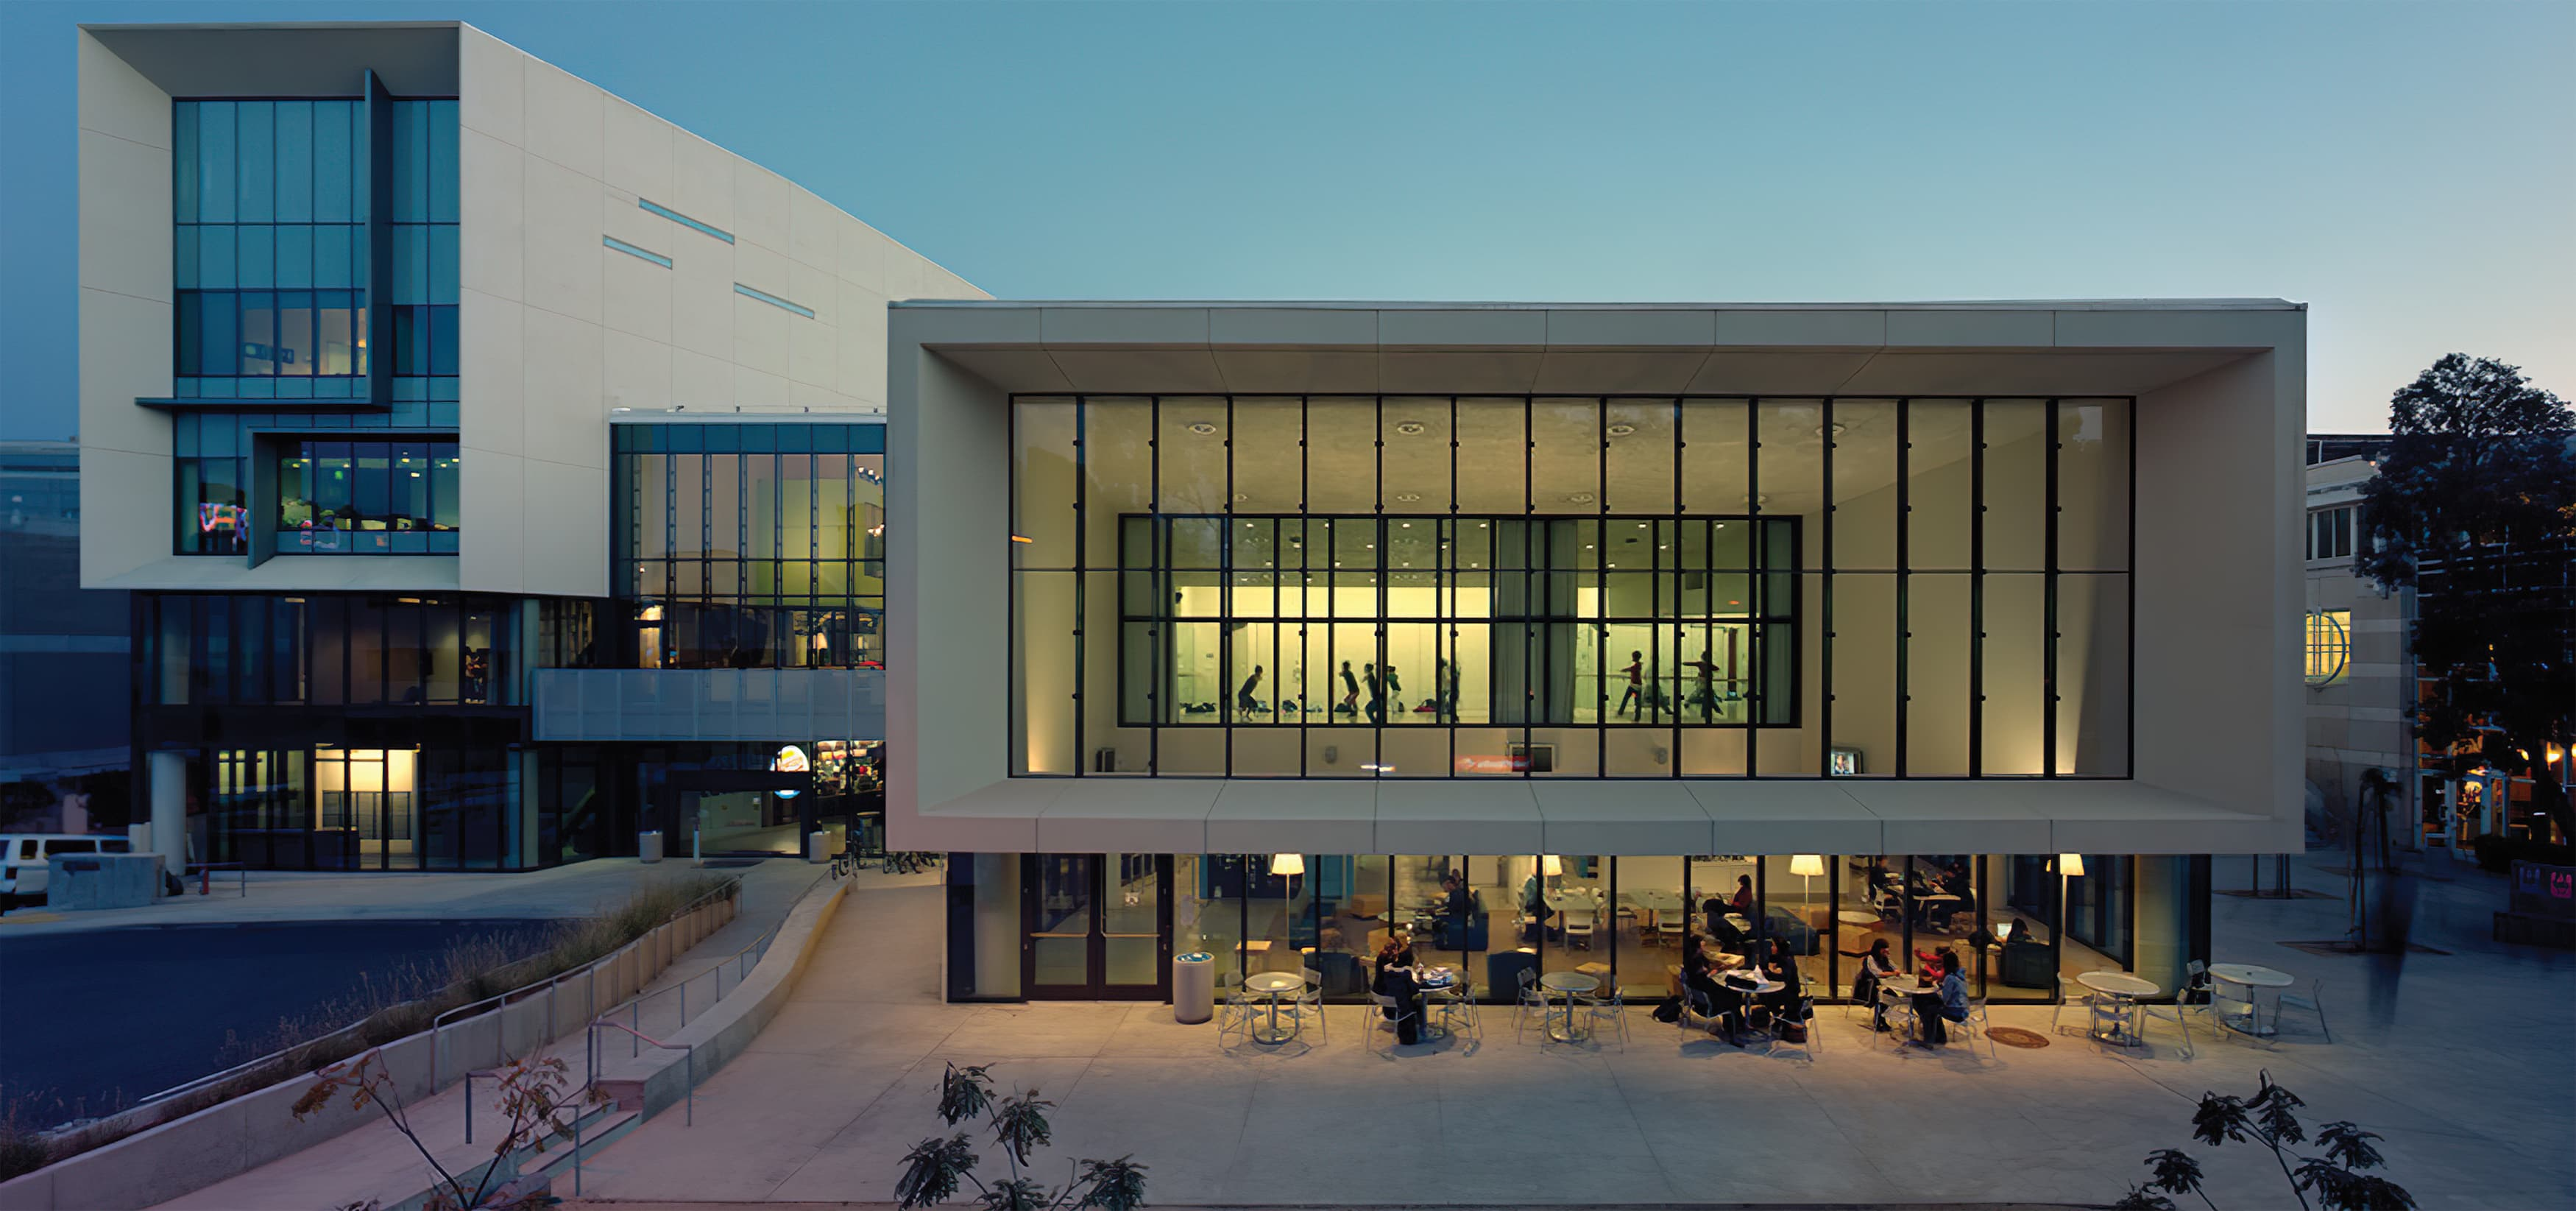 The Price Center, at the University of California, San Diego.